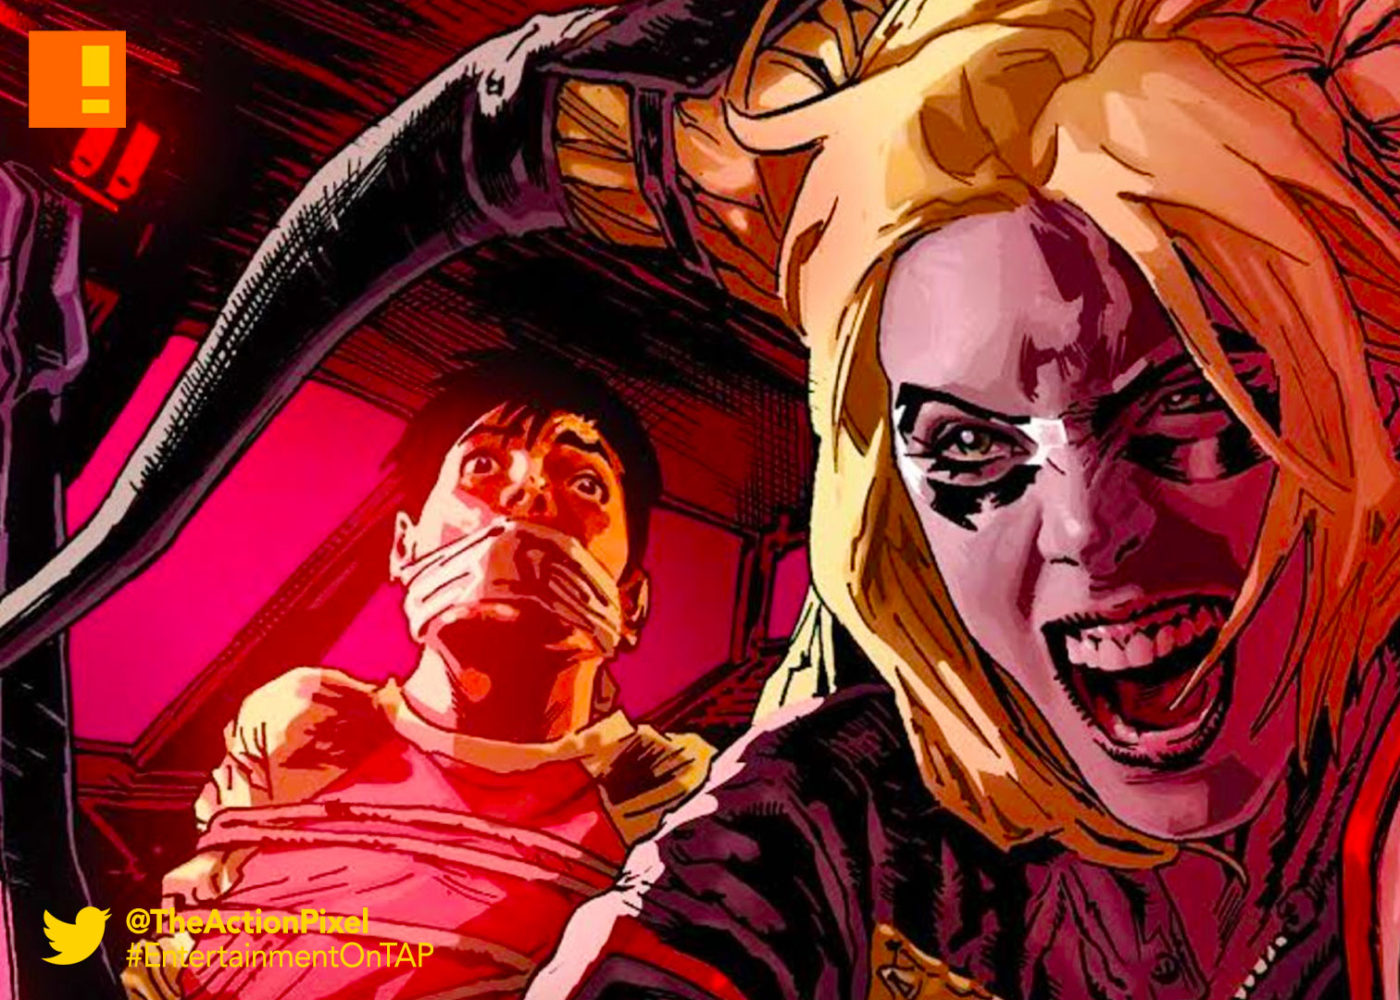 injustice: ground zero, injustice, injustice 2, harley quinn, entertainment on tap, comic series, dc comics, wb games, netherrealm studios,